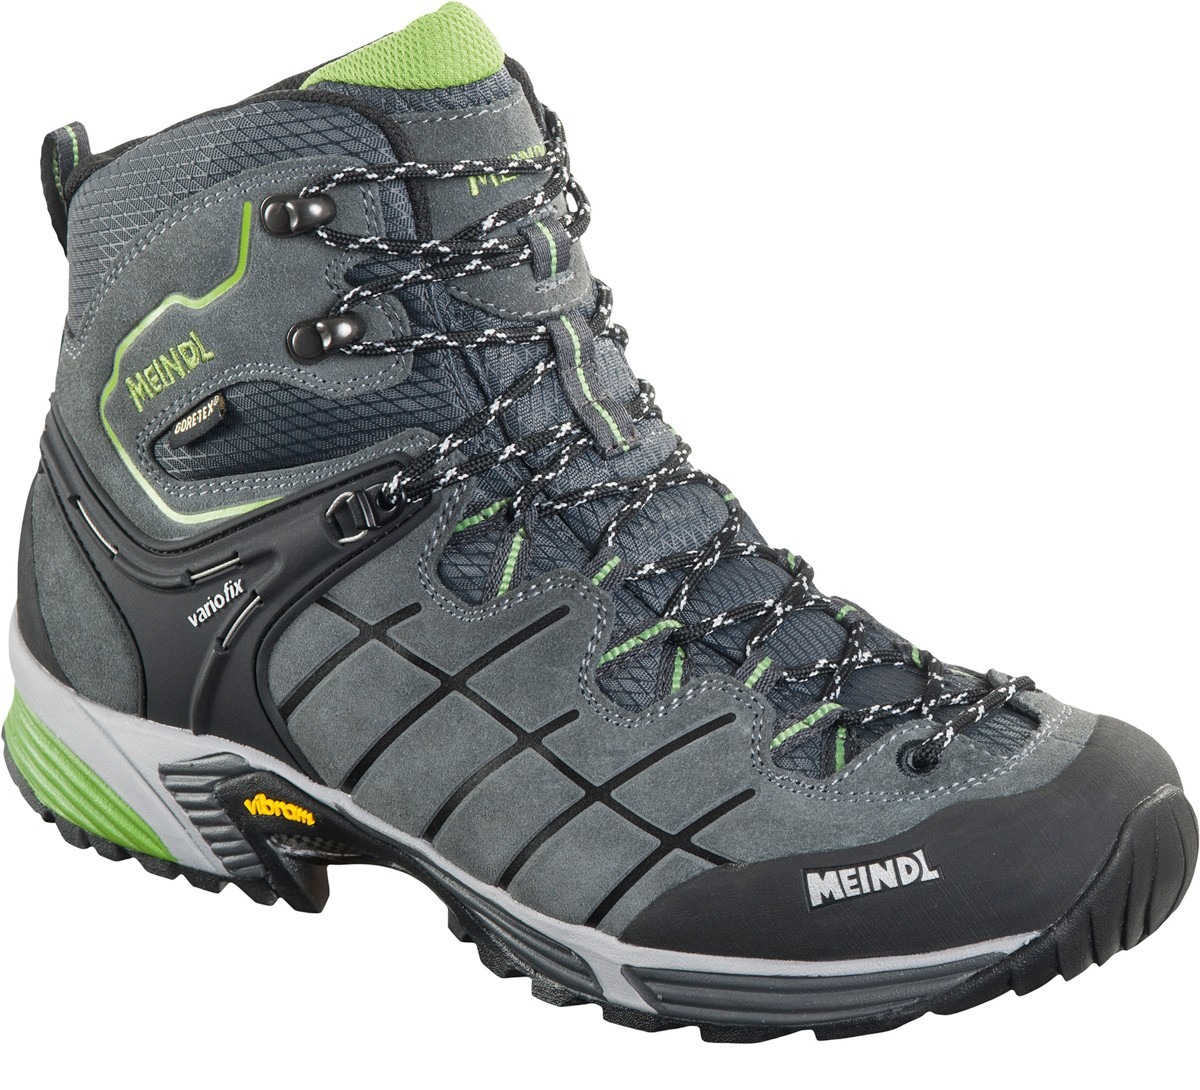 meindl hiking shoe kapstadt gore tex trekking shoes shoes. Black Bedroom Furniture Sets. Home Design Ideas